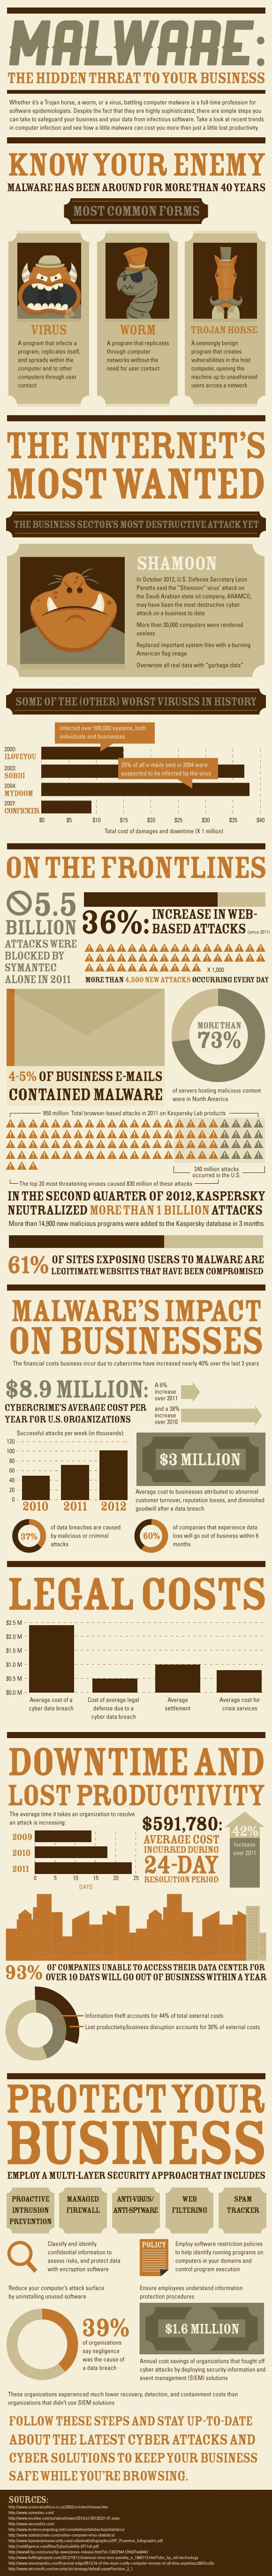 Malware: The Hidden Threat To Your Business #flowchart #infographic